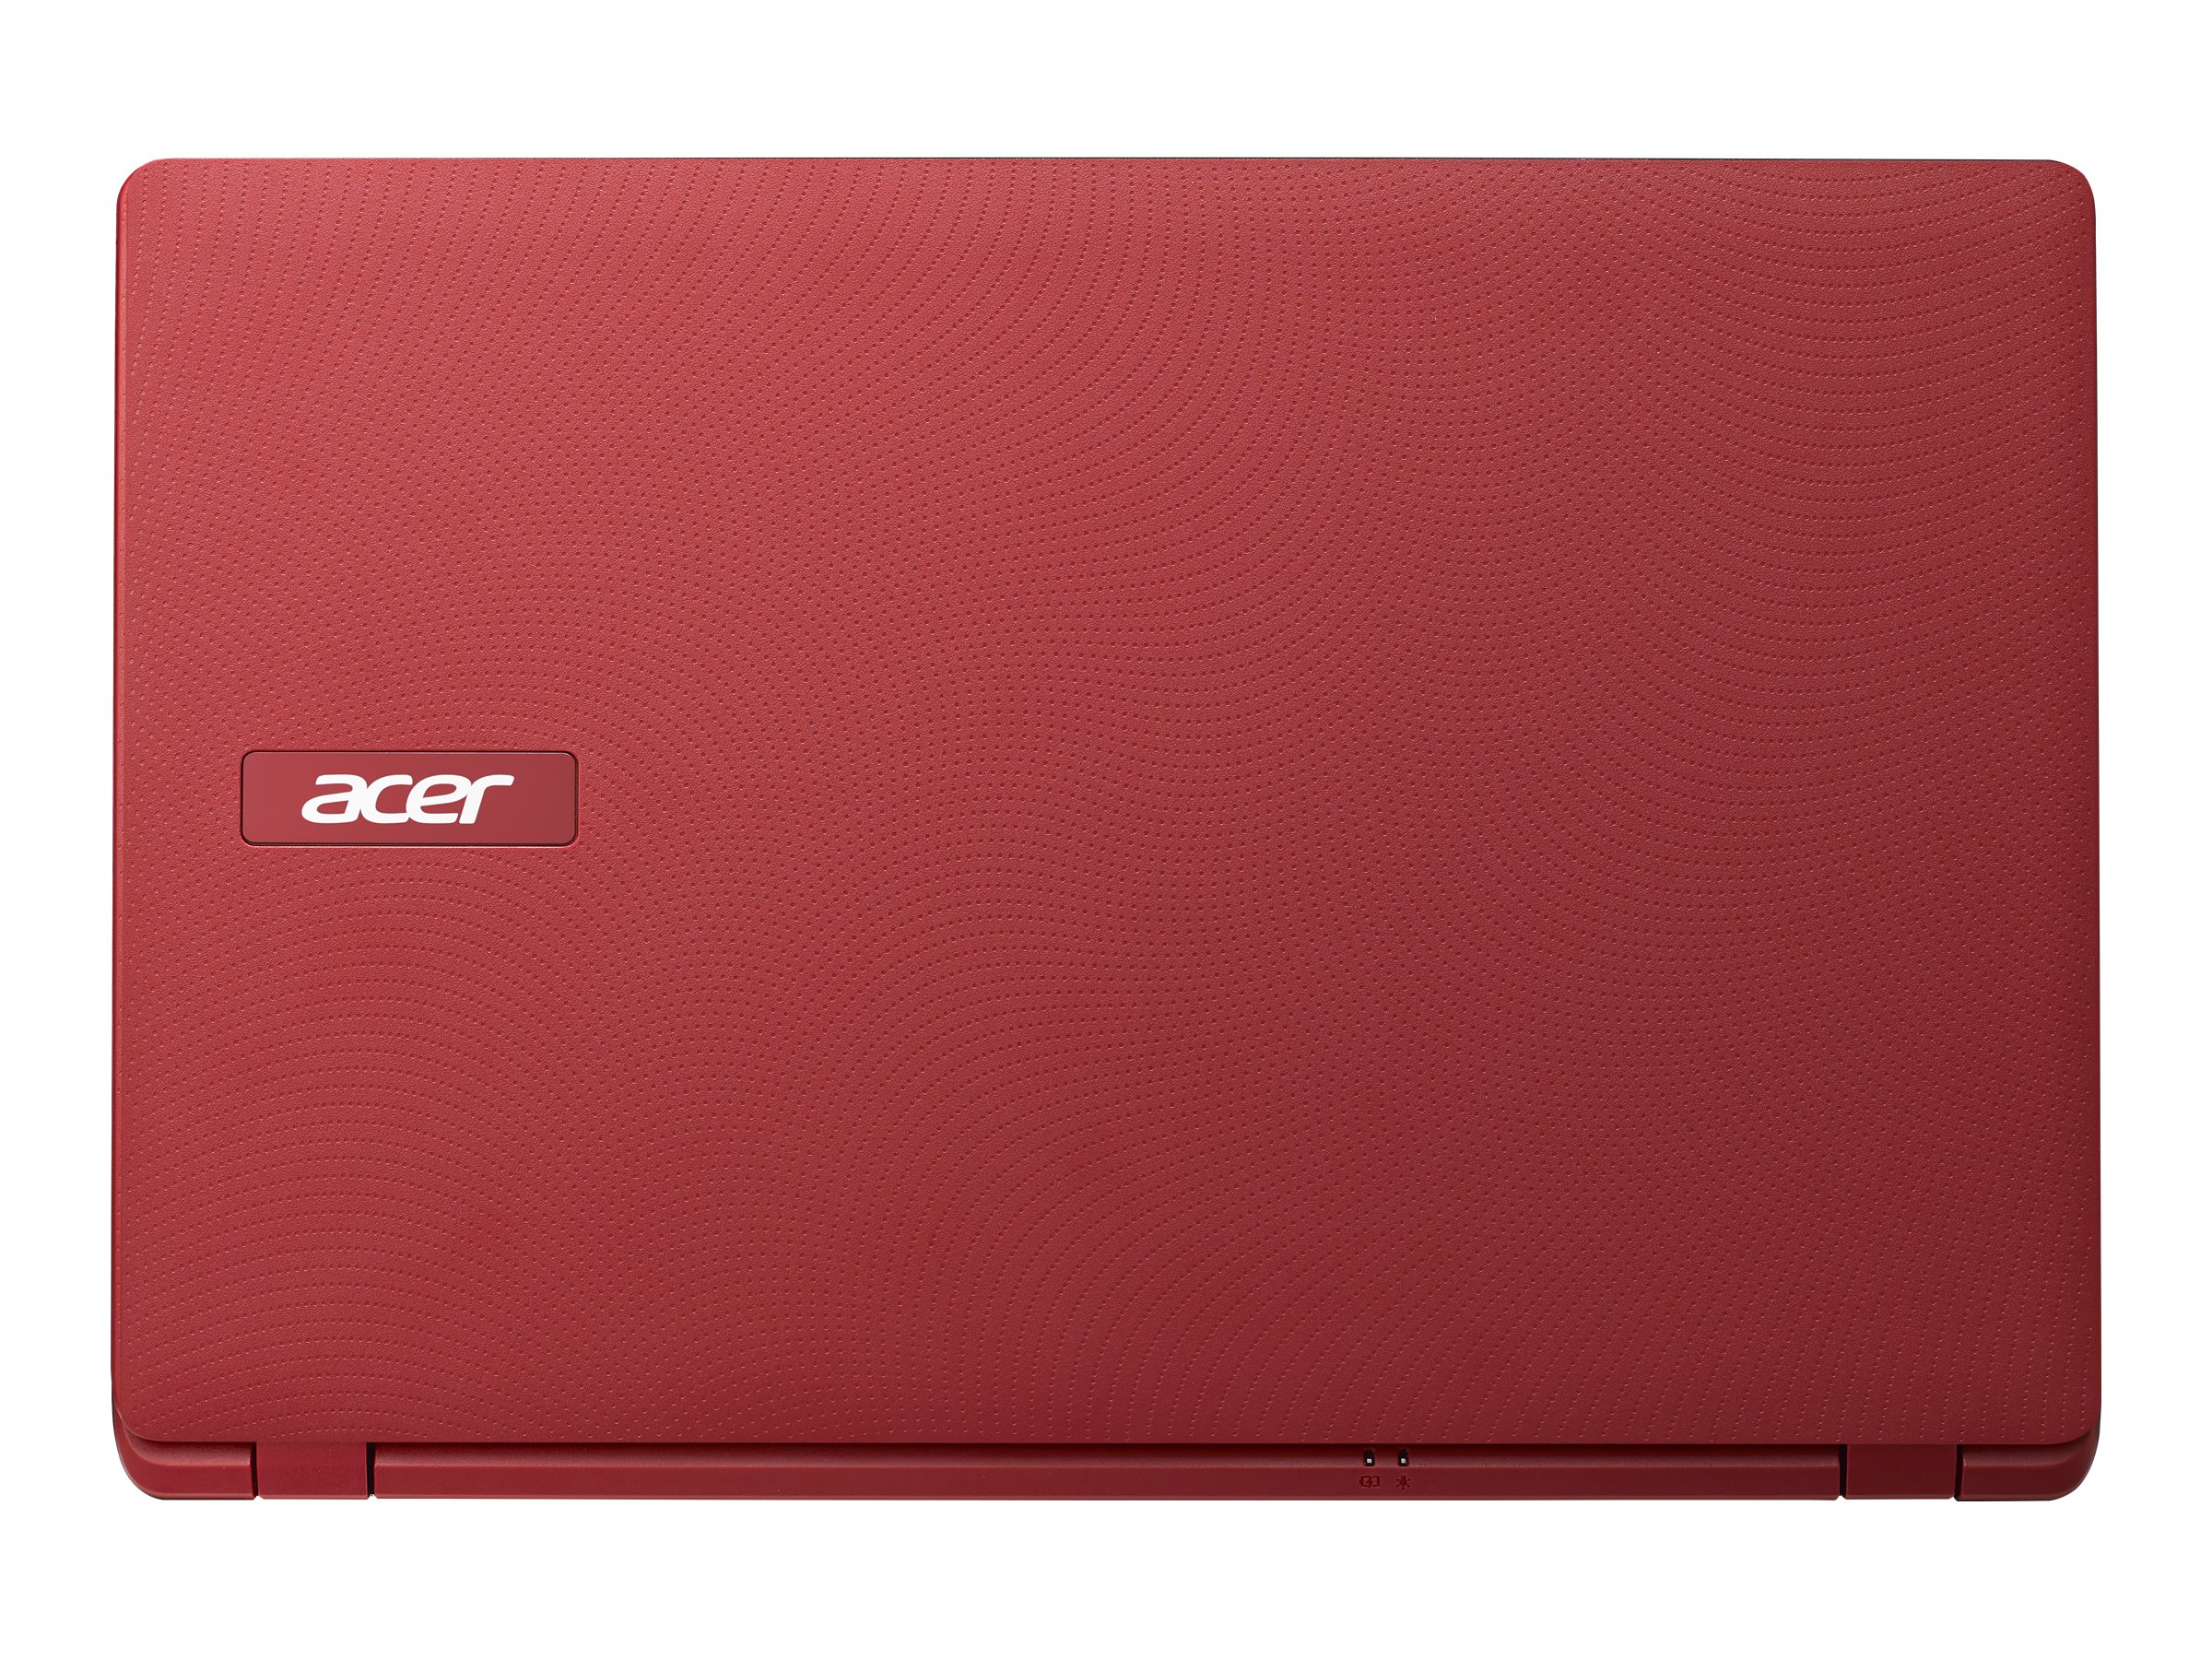 Acer Aspire ES1-571-30XX 2GHz Core i3 15.6in display, NX.GCGAA.001